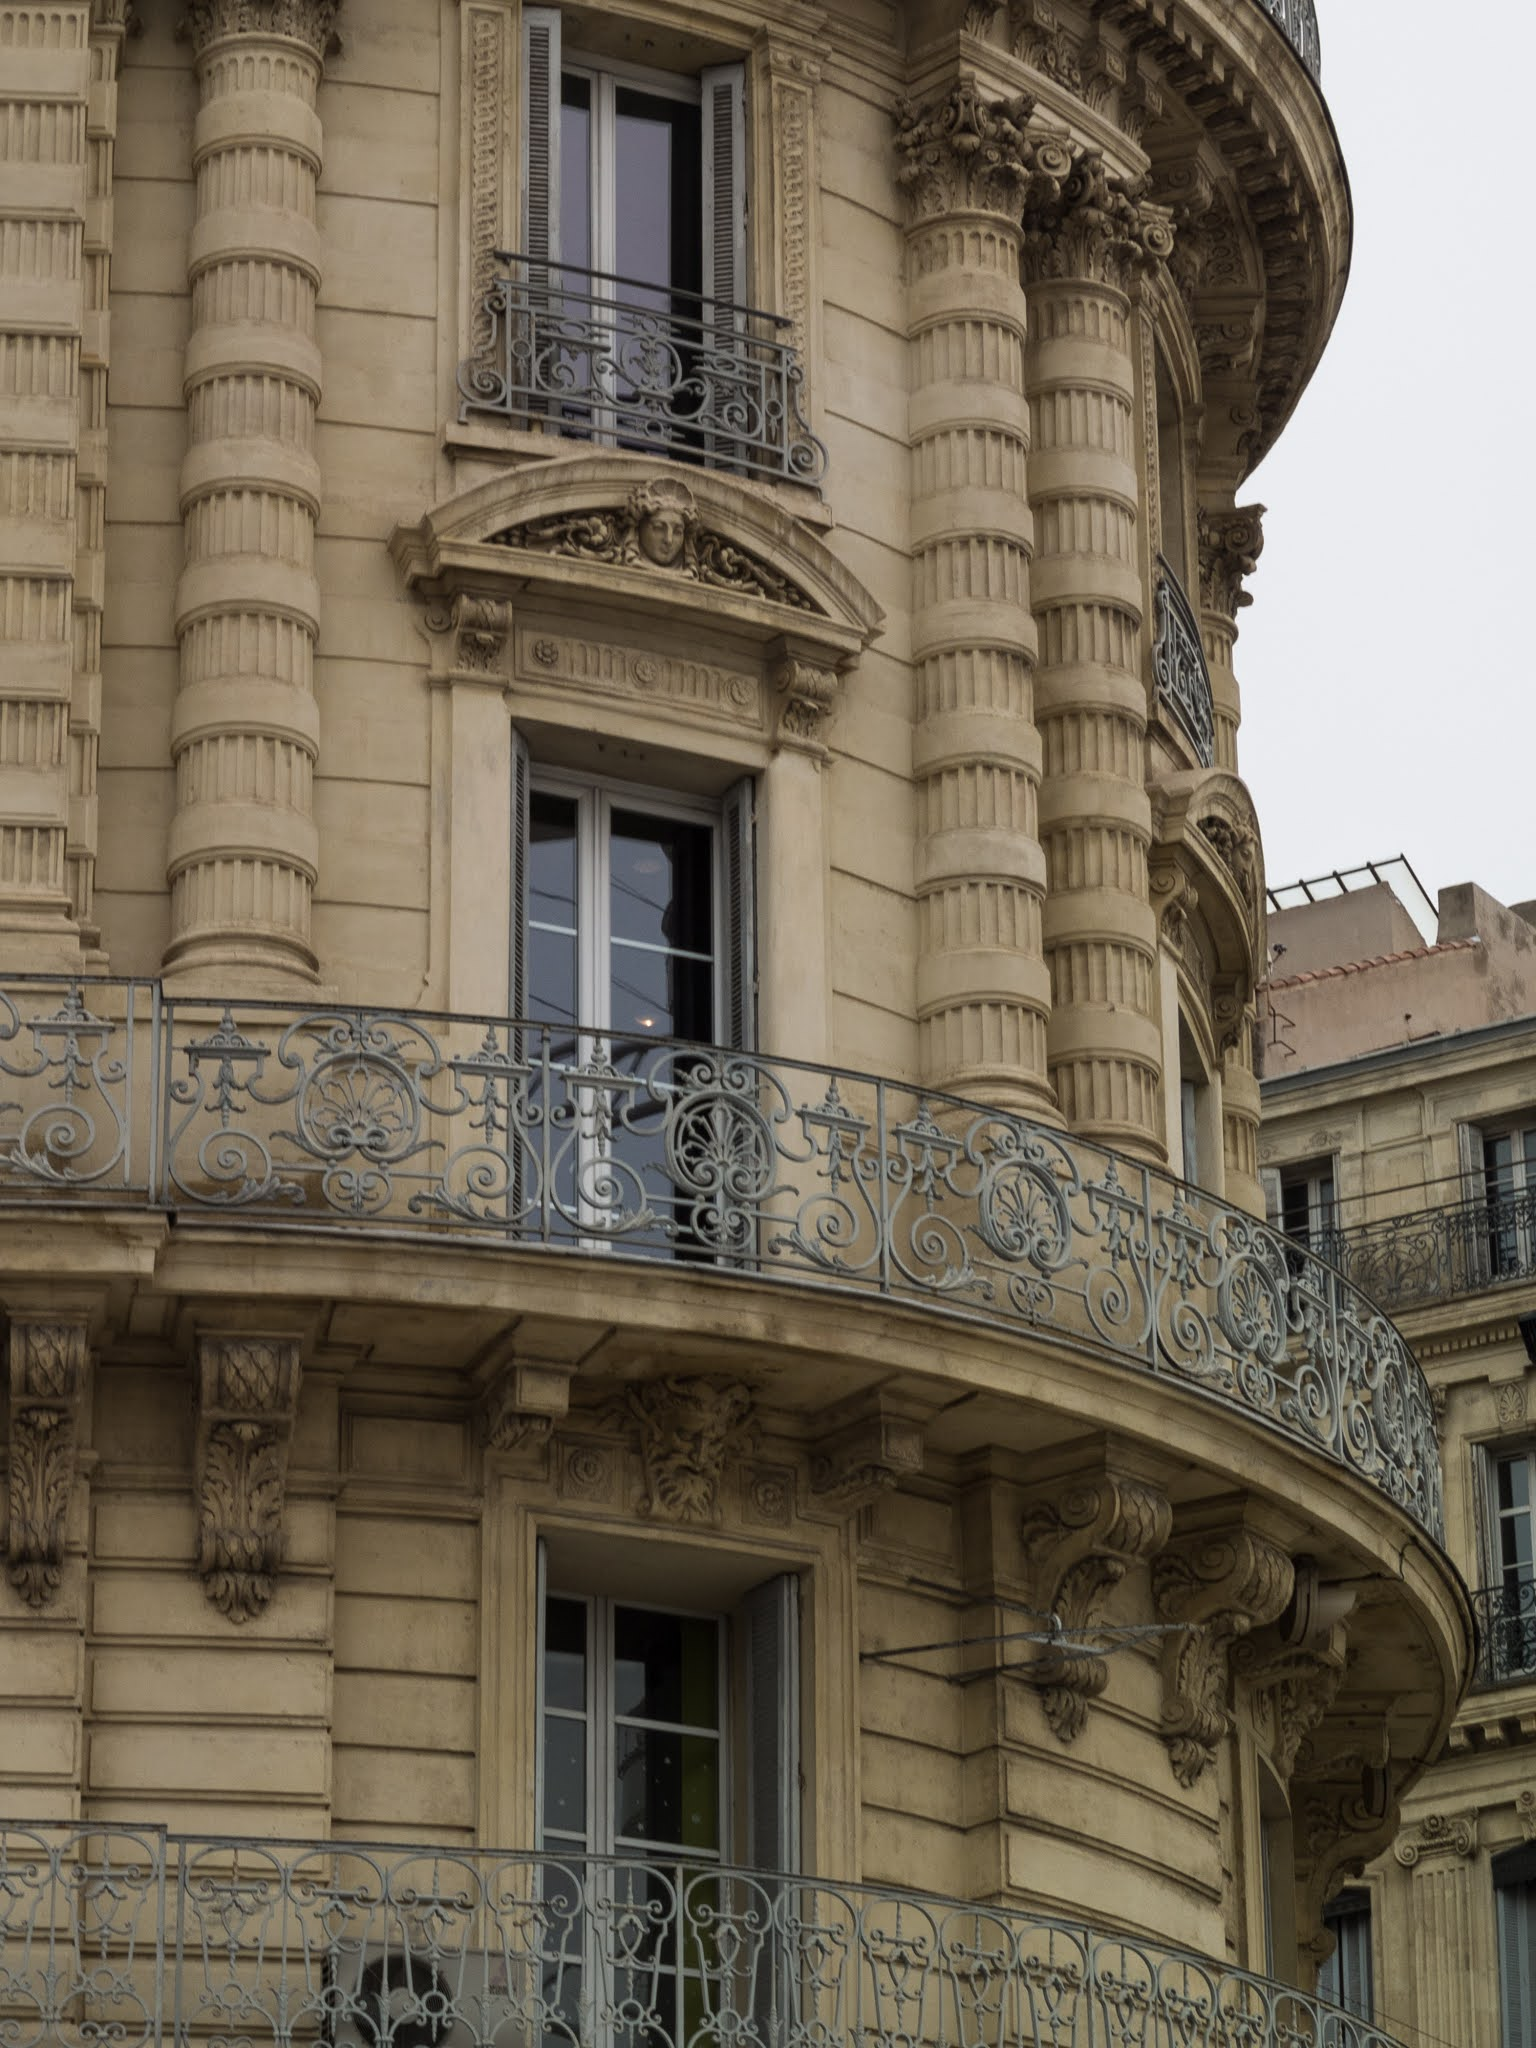 A close up of a curved building on Les quais du Port in Marseille, Southern France.